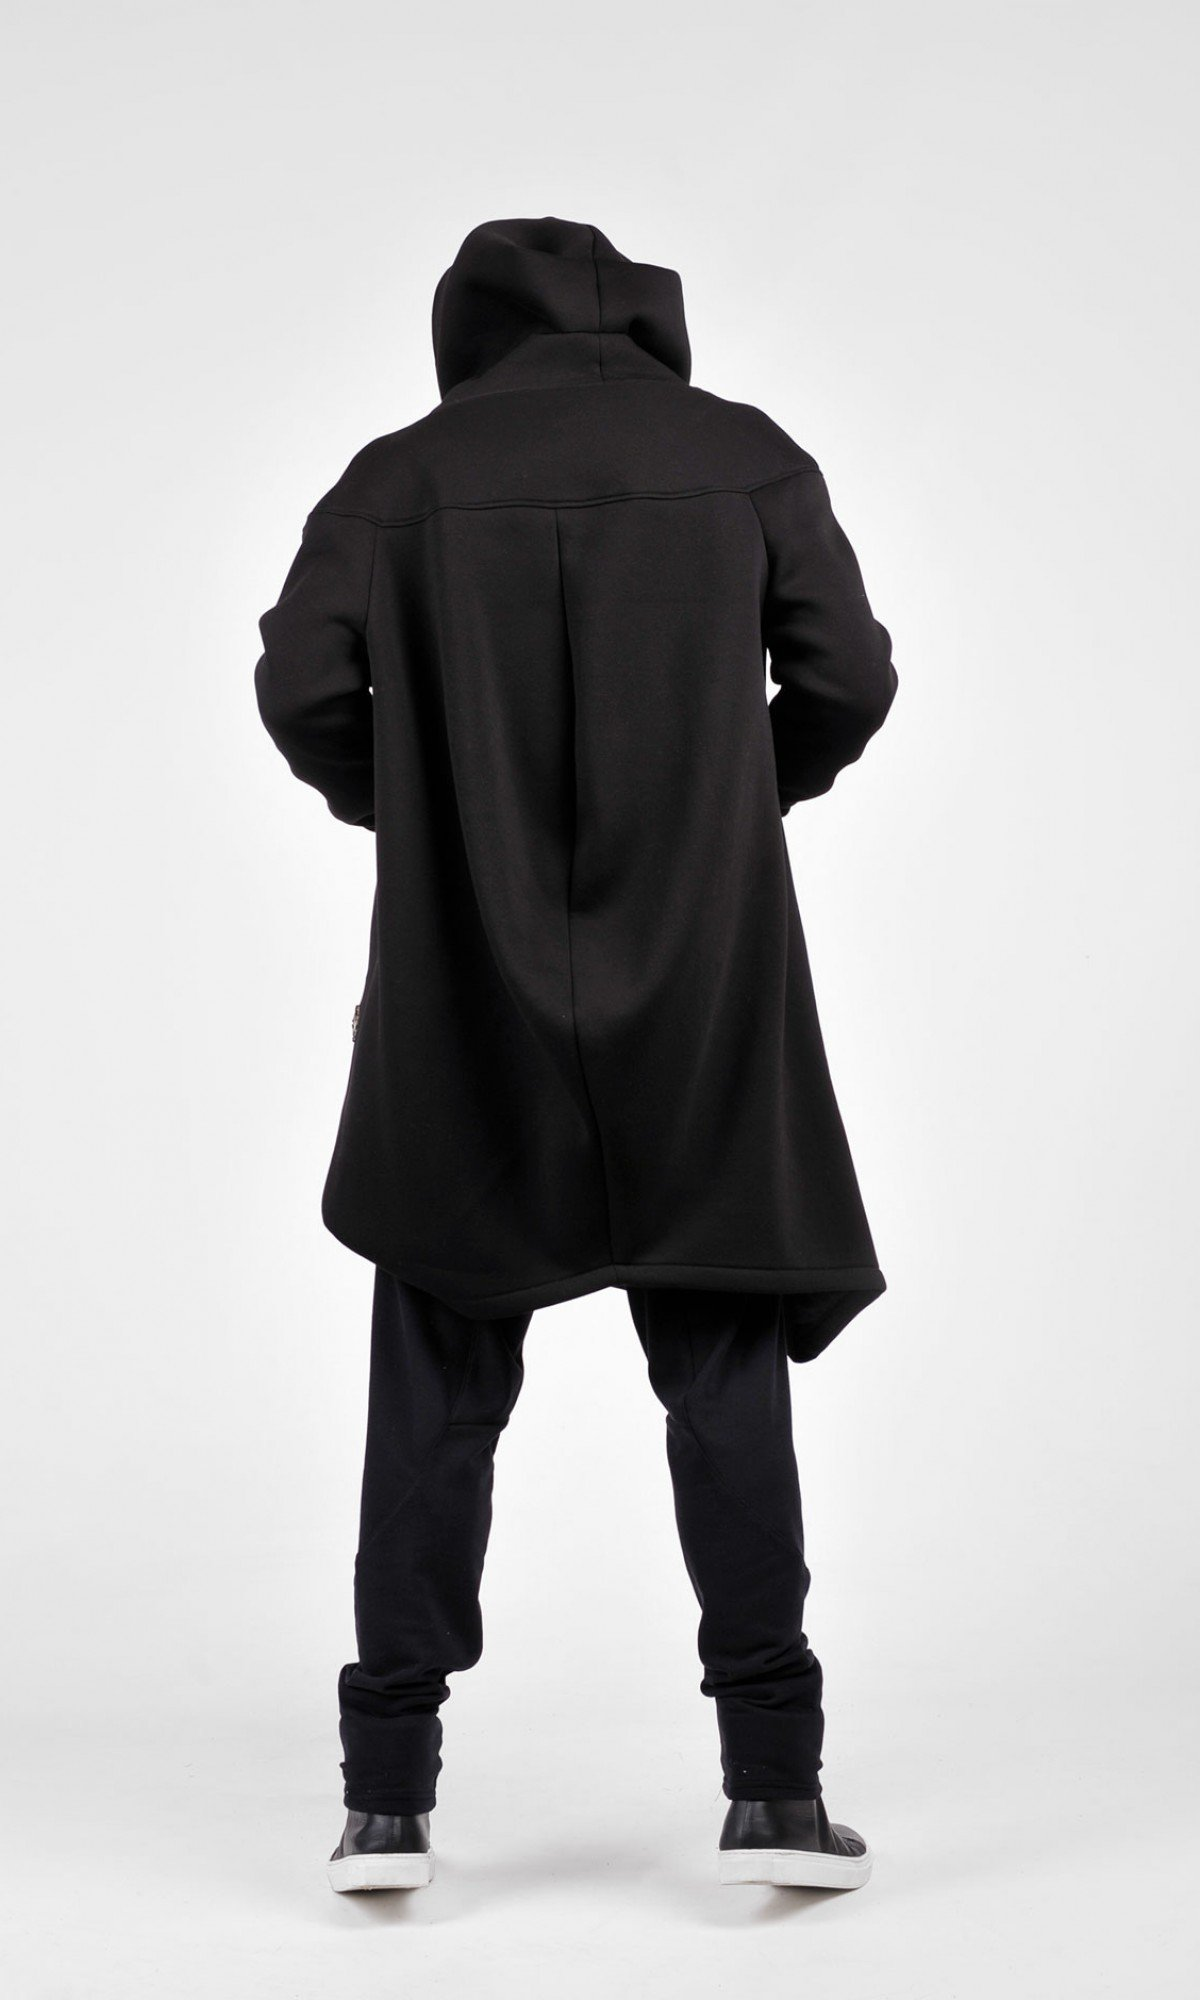 Asymmetric Extravagant Black Hooded Coat A07177M